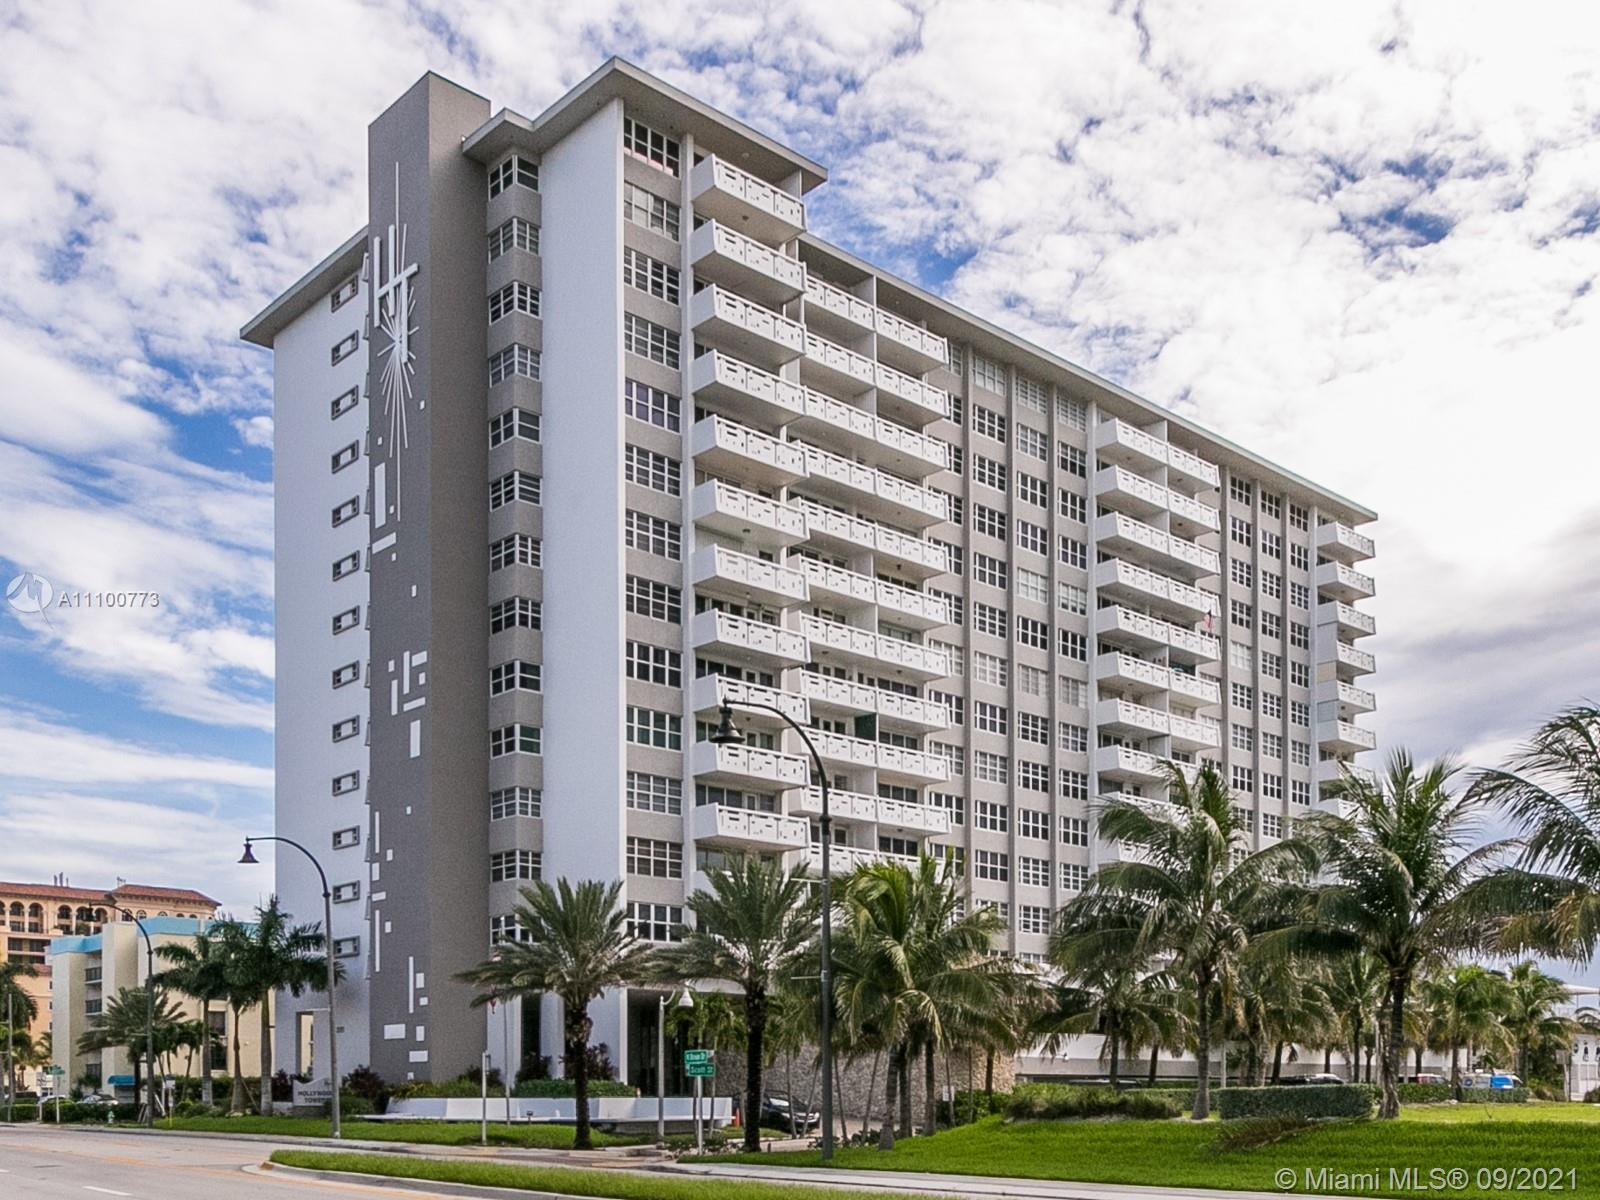 **READY FOR RELAXED OCEAN FRONT LIVING? COME AND LOOK AT THIS SPACIOUS ONE BEDROOM 1 1/2 BATHROOMS C